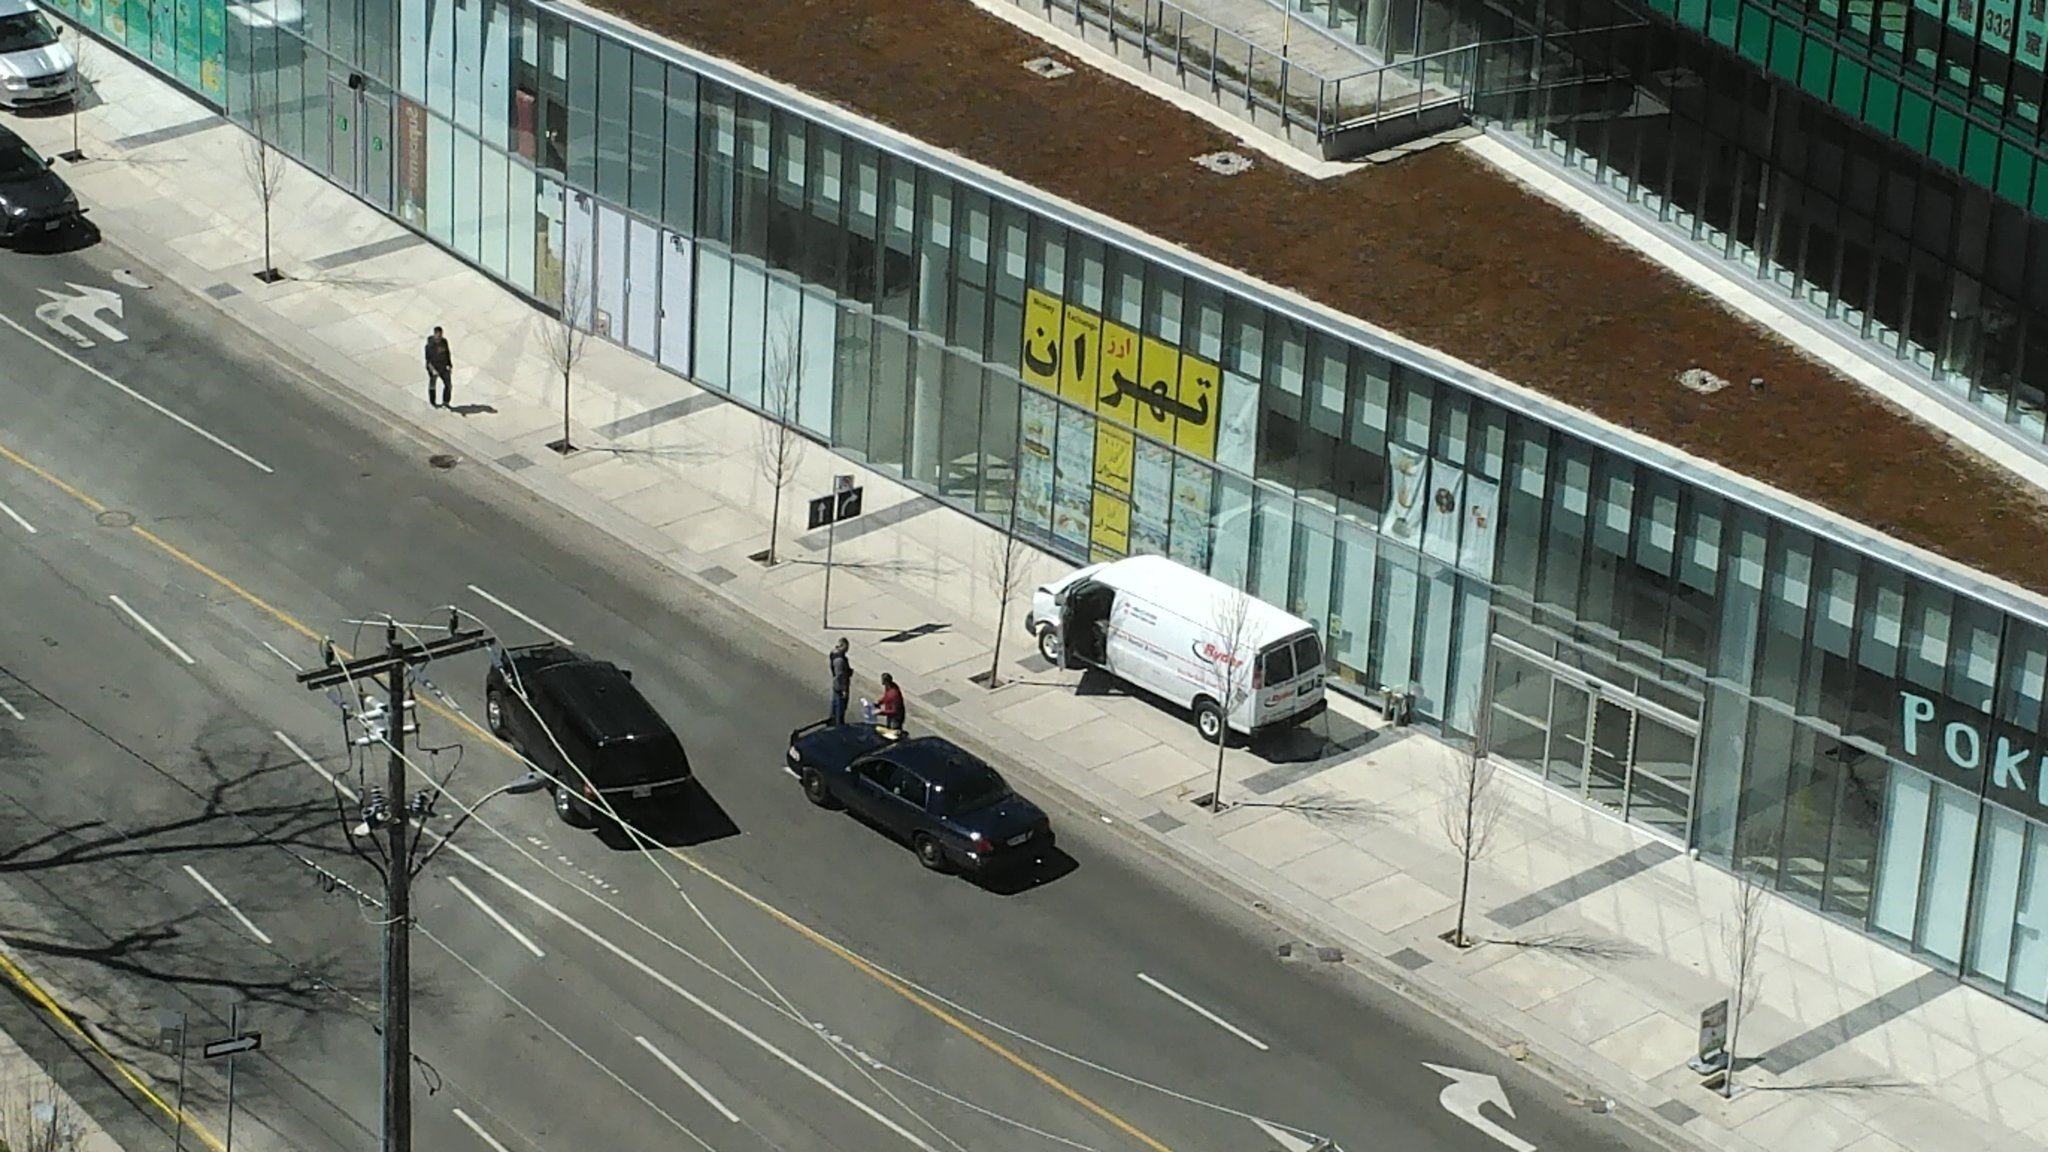 Van hops Toronto sidewalk, killing at least two